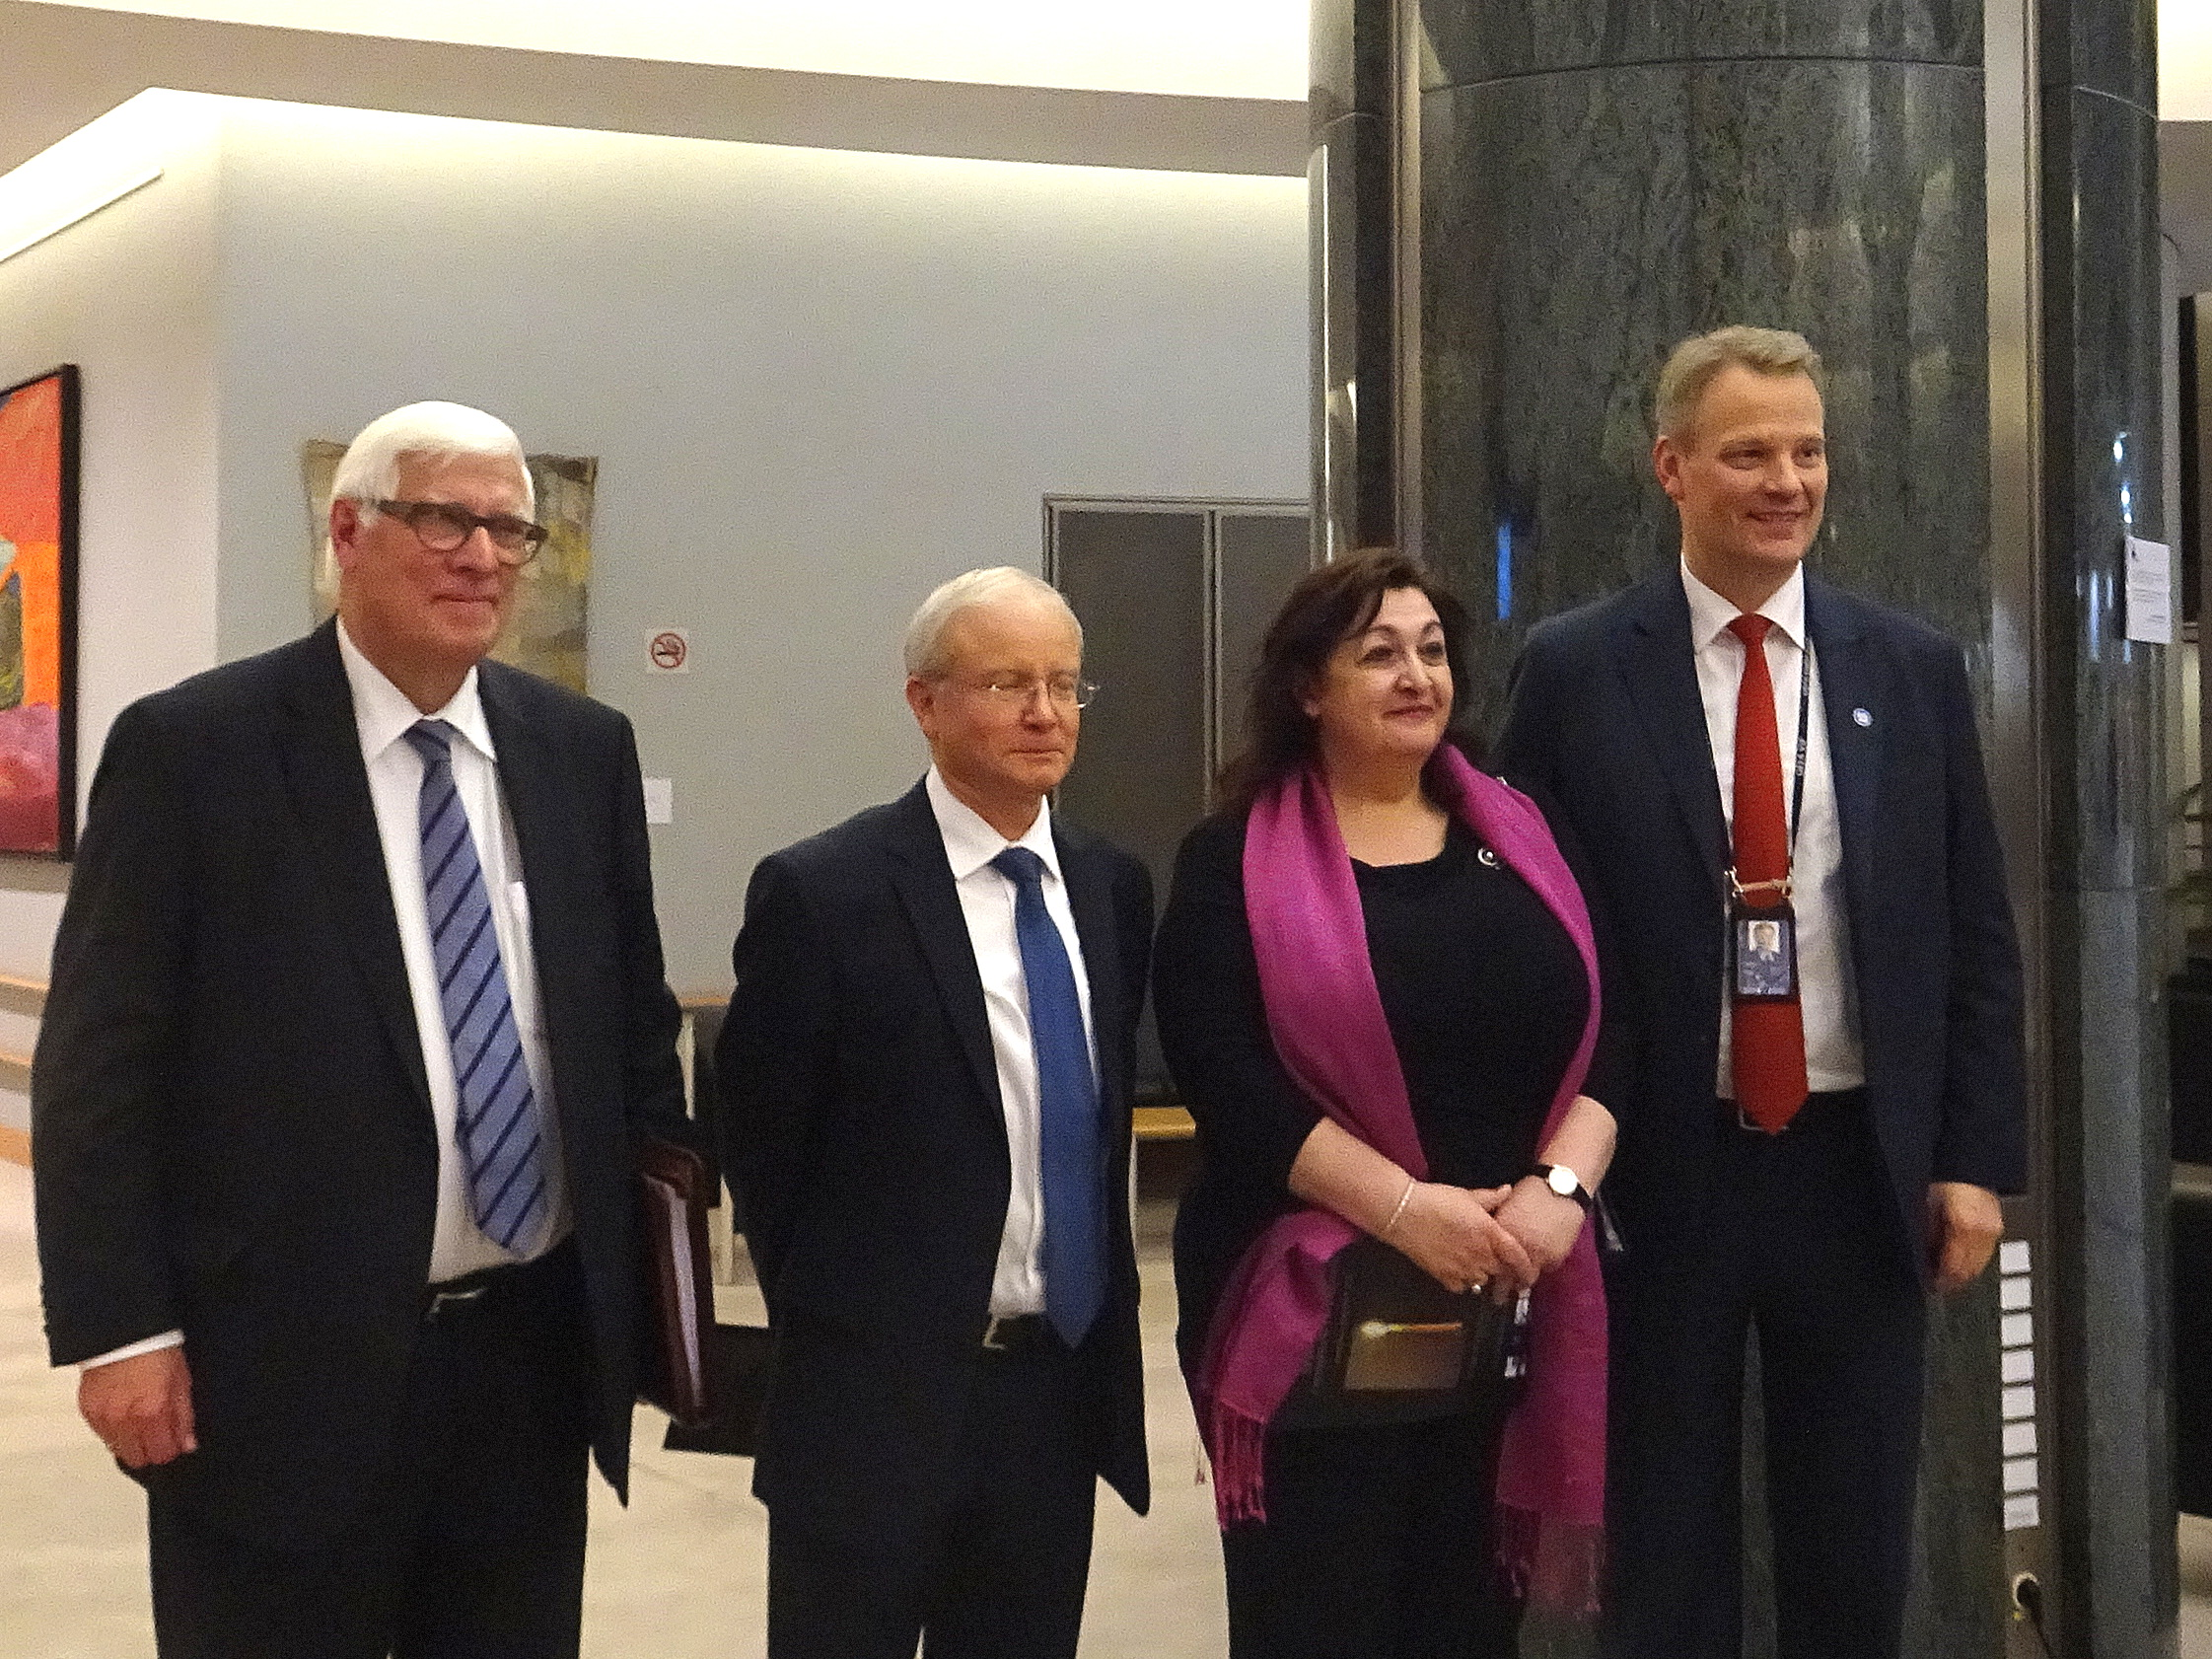 Hosts of the Event MEP Hannu Takkula and MEP Bas Belder, the Ambassador of Israel to EU and NATO Aharon Leshno-Yaar and Inna Rogatchi at the Inaugural Opening of Champions of Humanity project